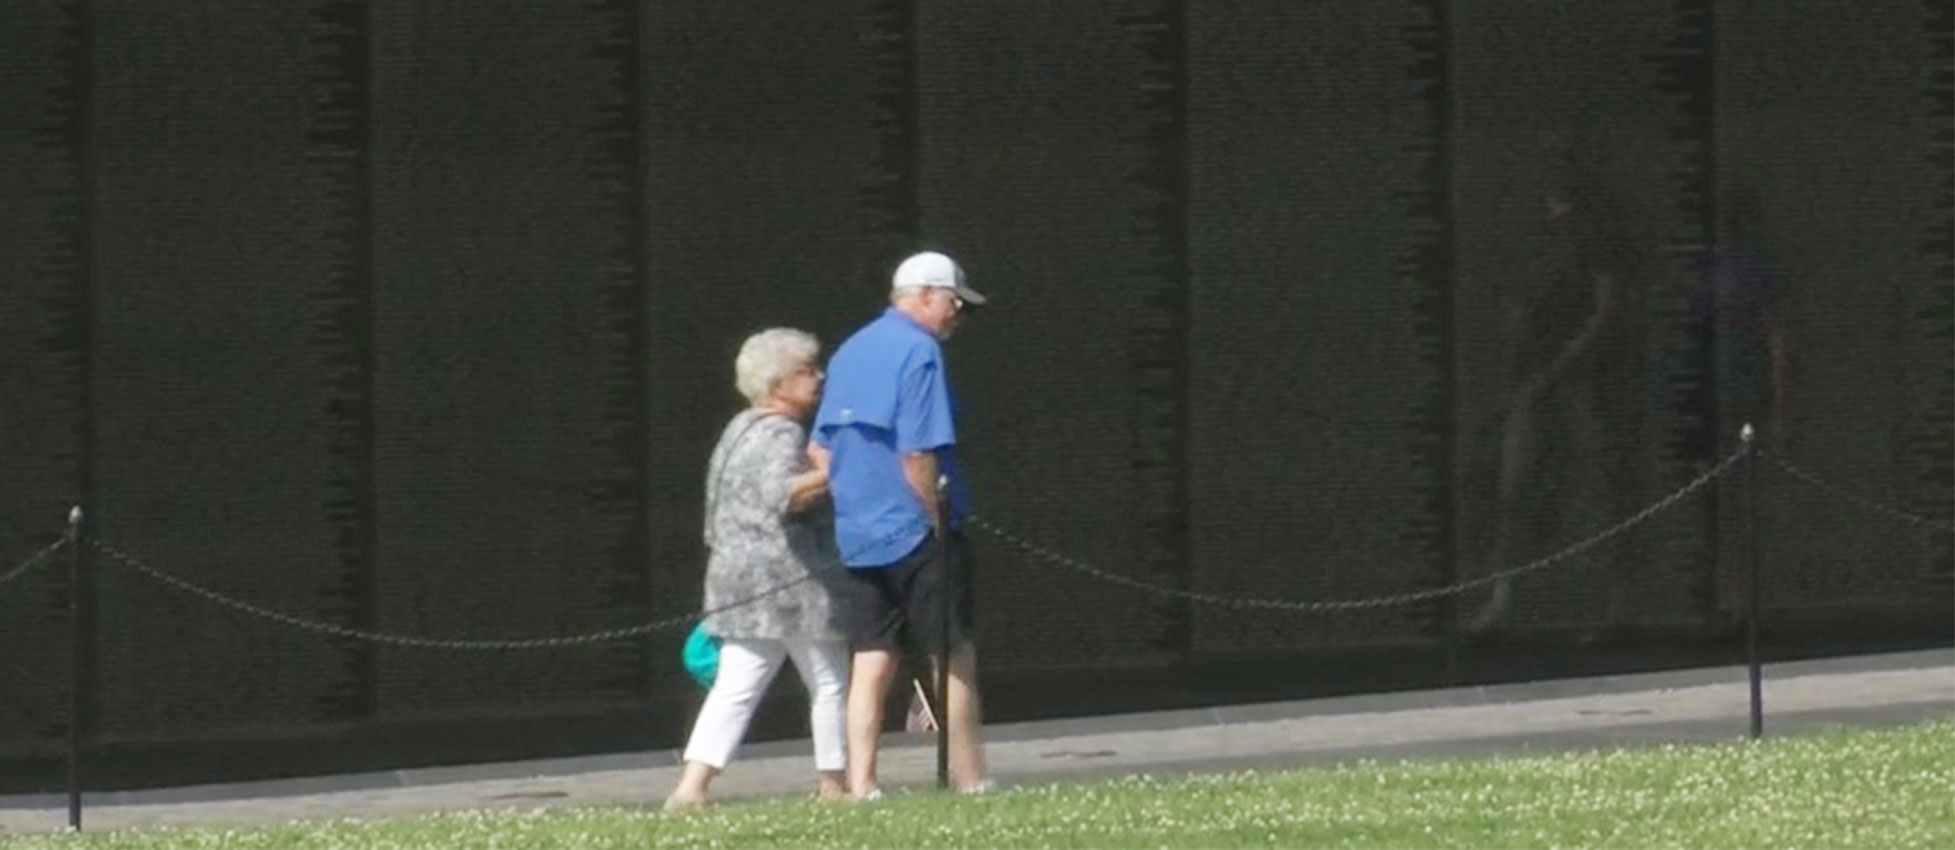 Vietnam Memorial Washington DC Honor Flight